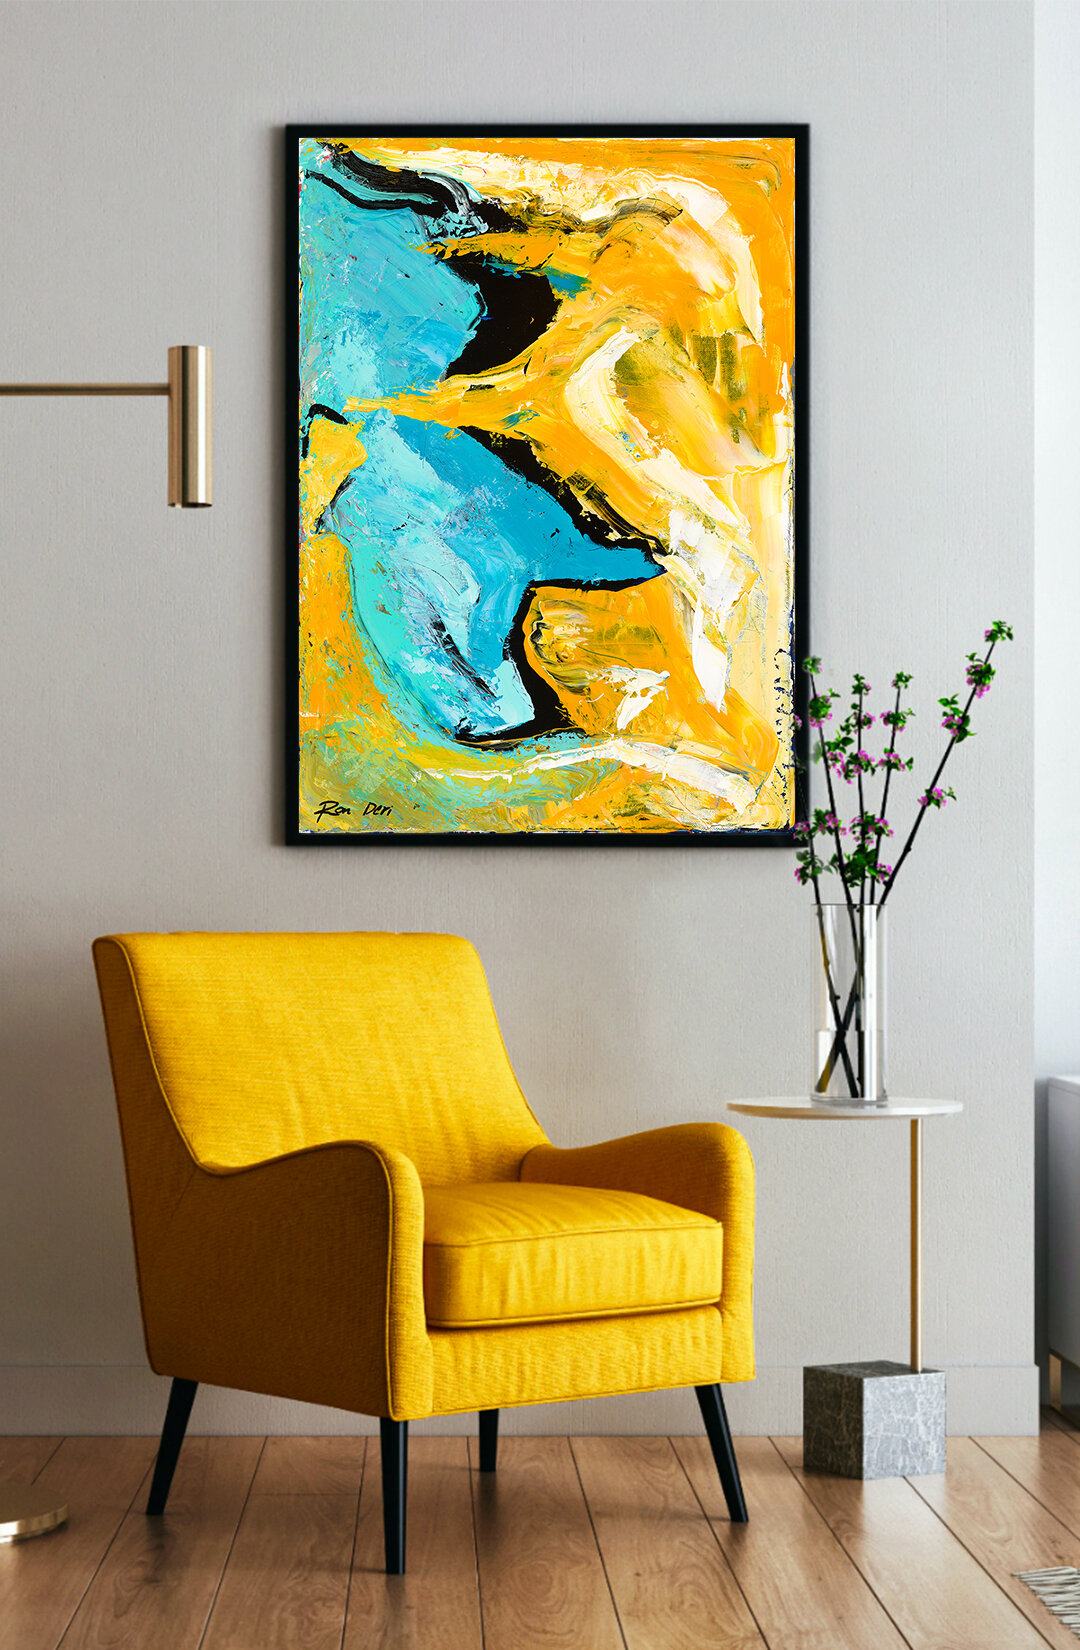 Wall decor inspiration matching colors abstract art